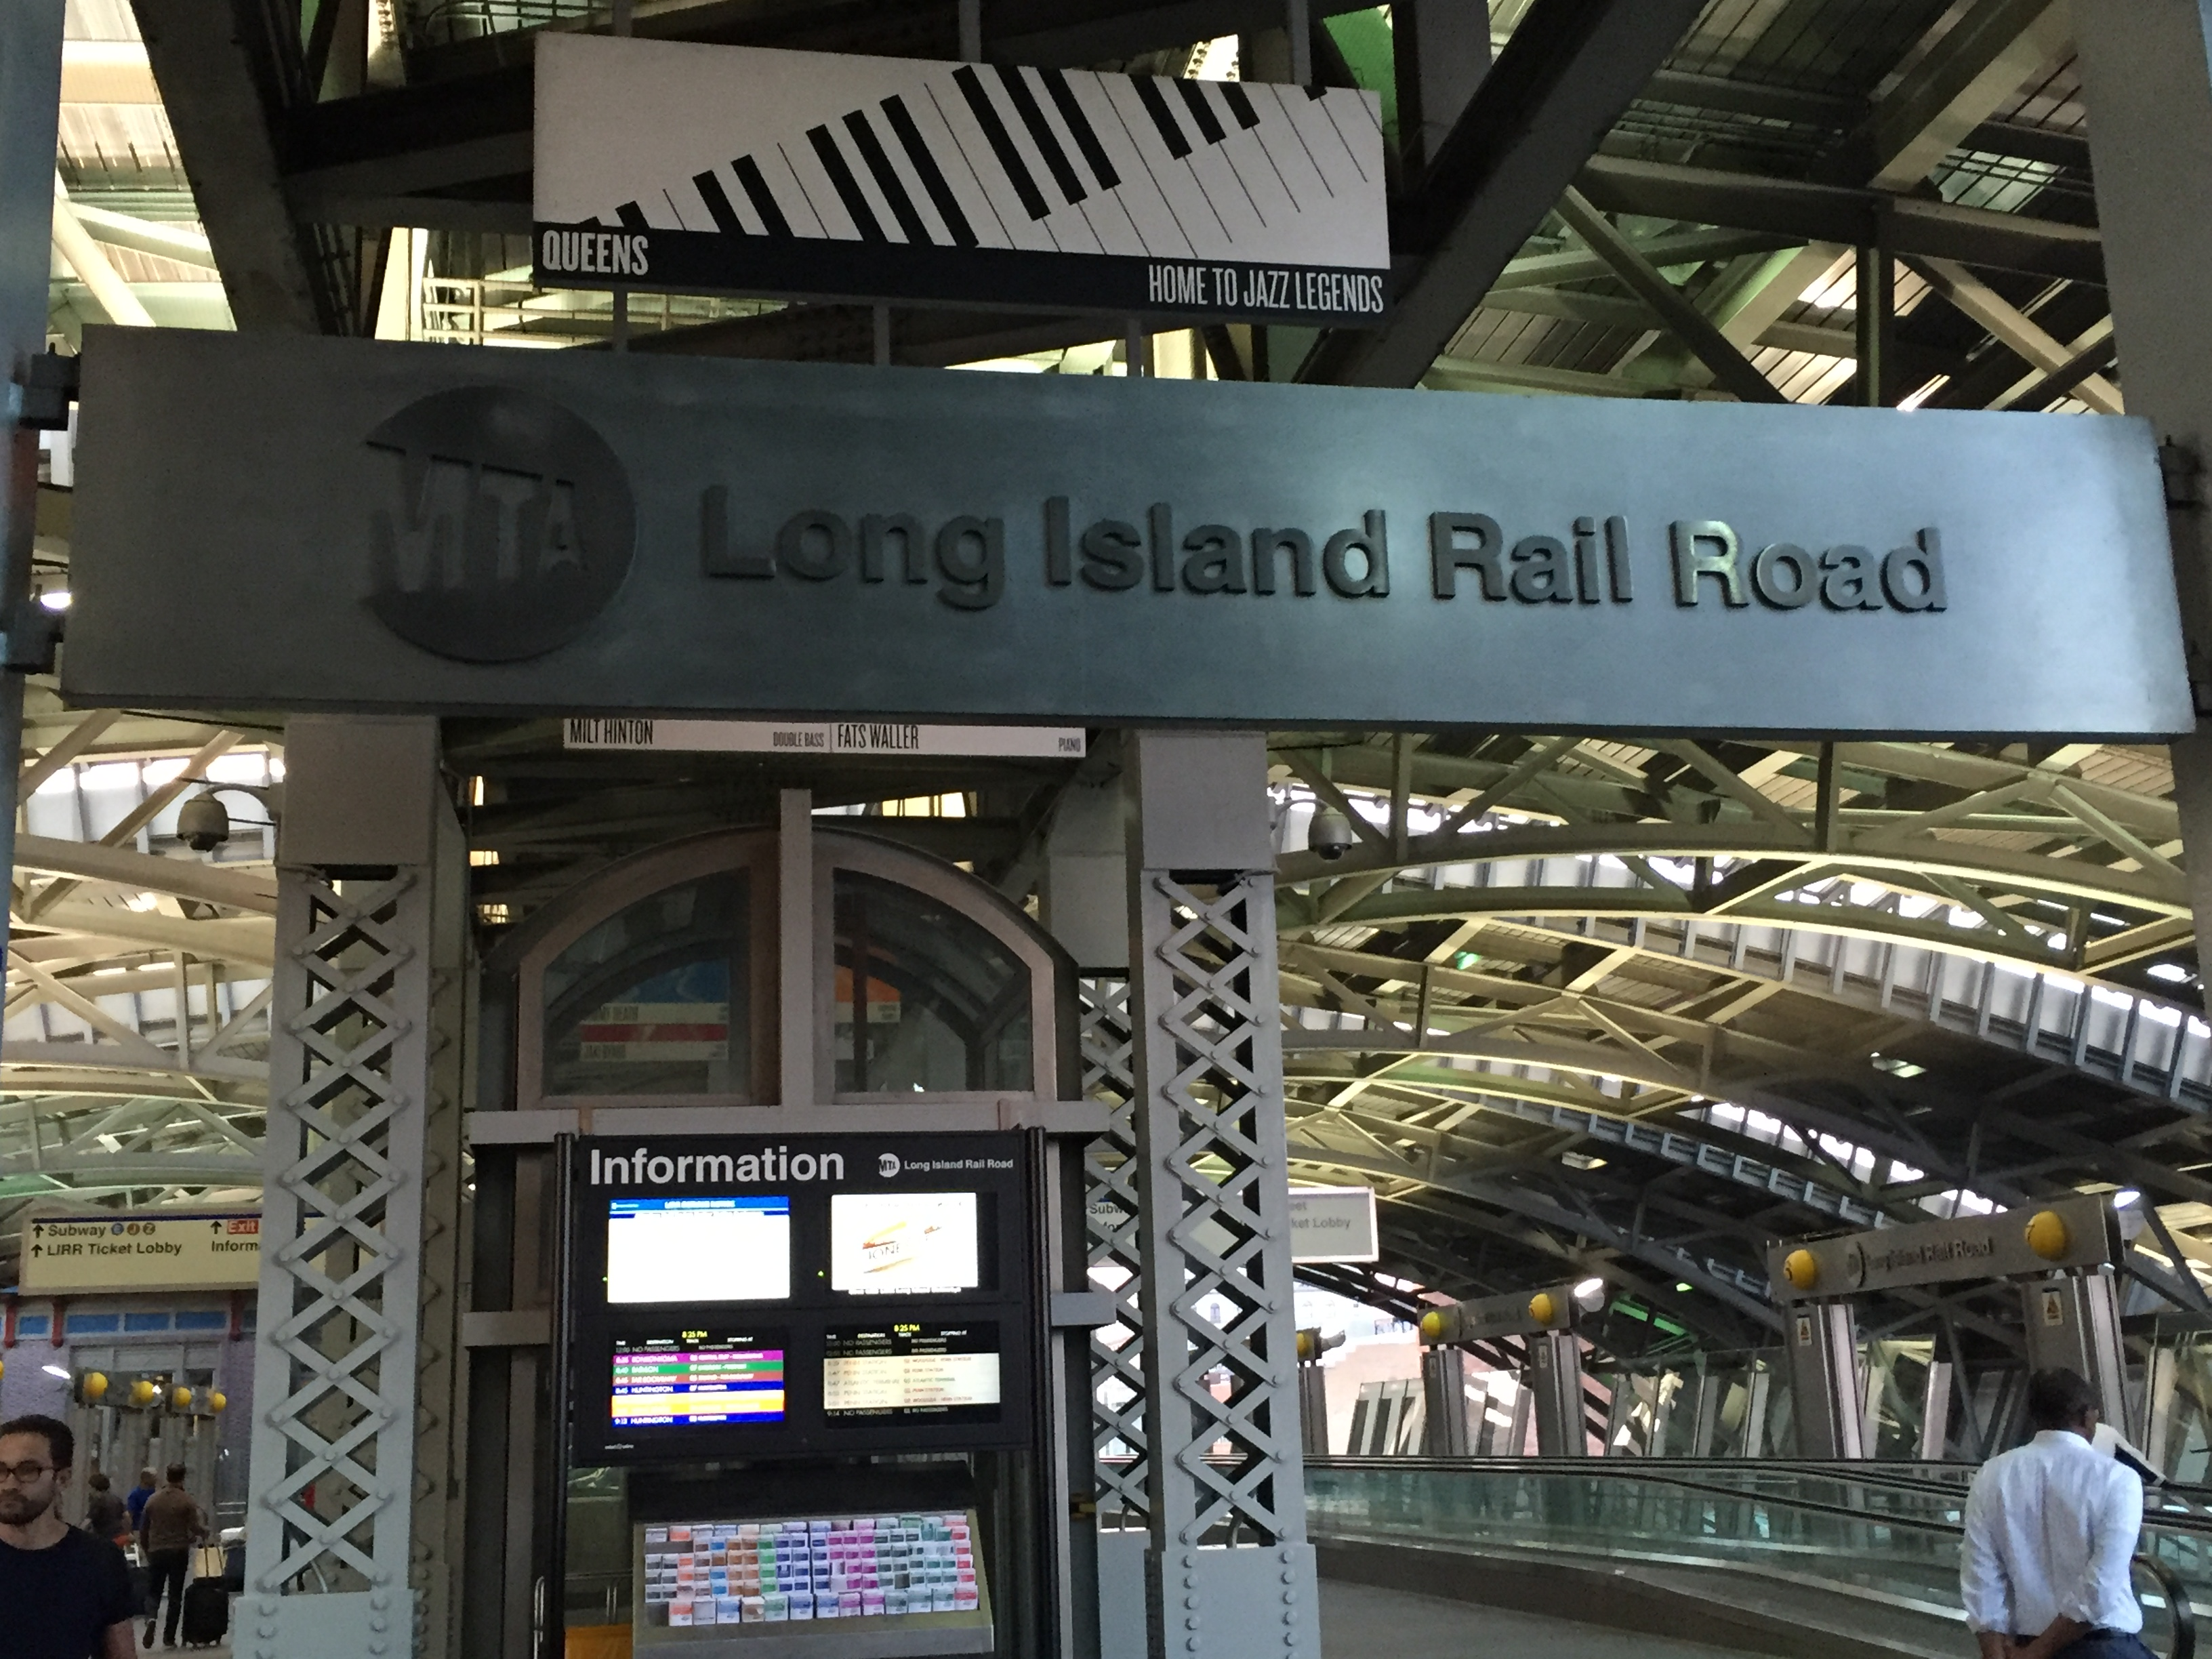 At just $7.75 each way, the fastest, affordable and relaxing way to get to midtown from JFK is on the Long Island Railroad (LIRR).